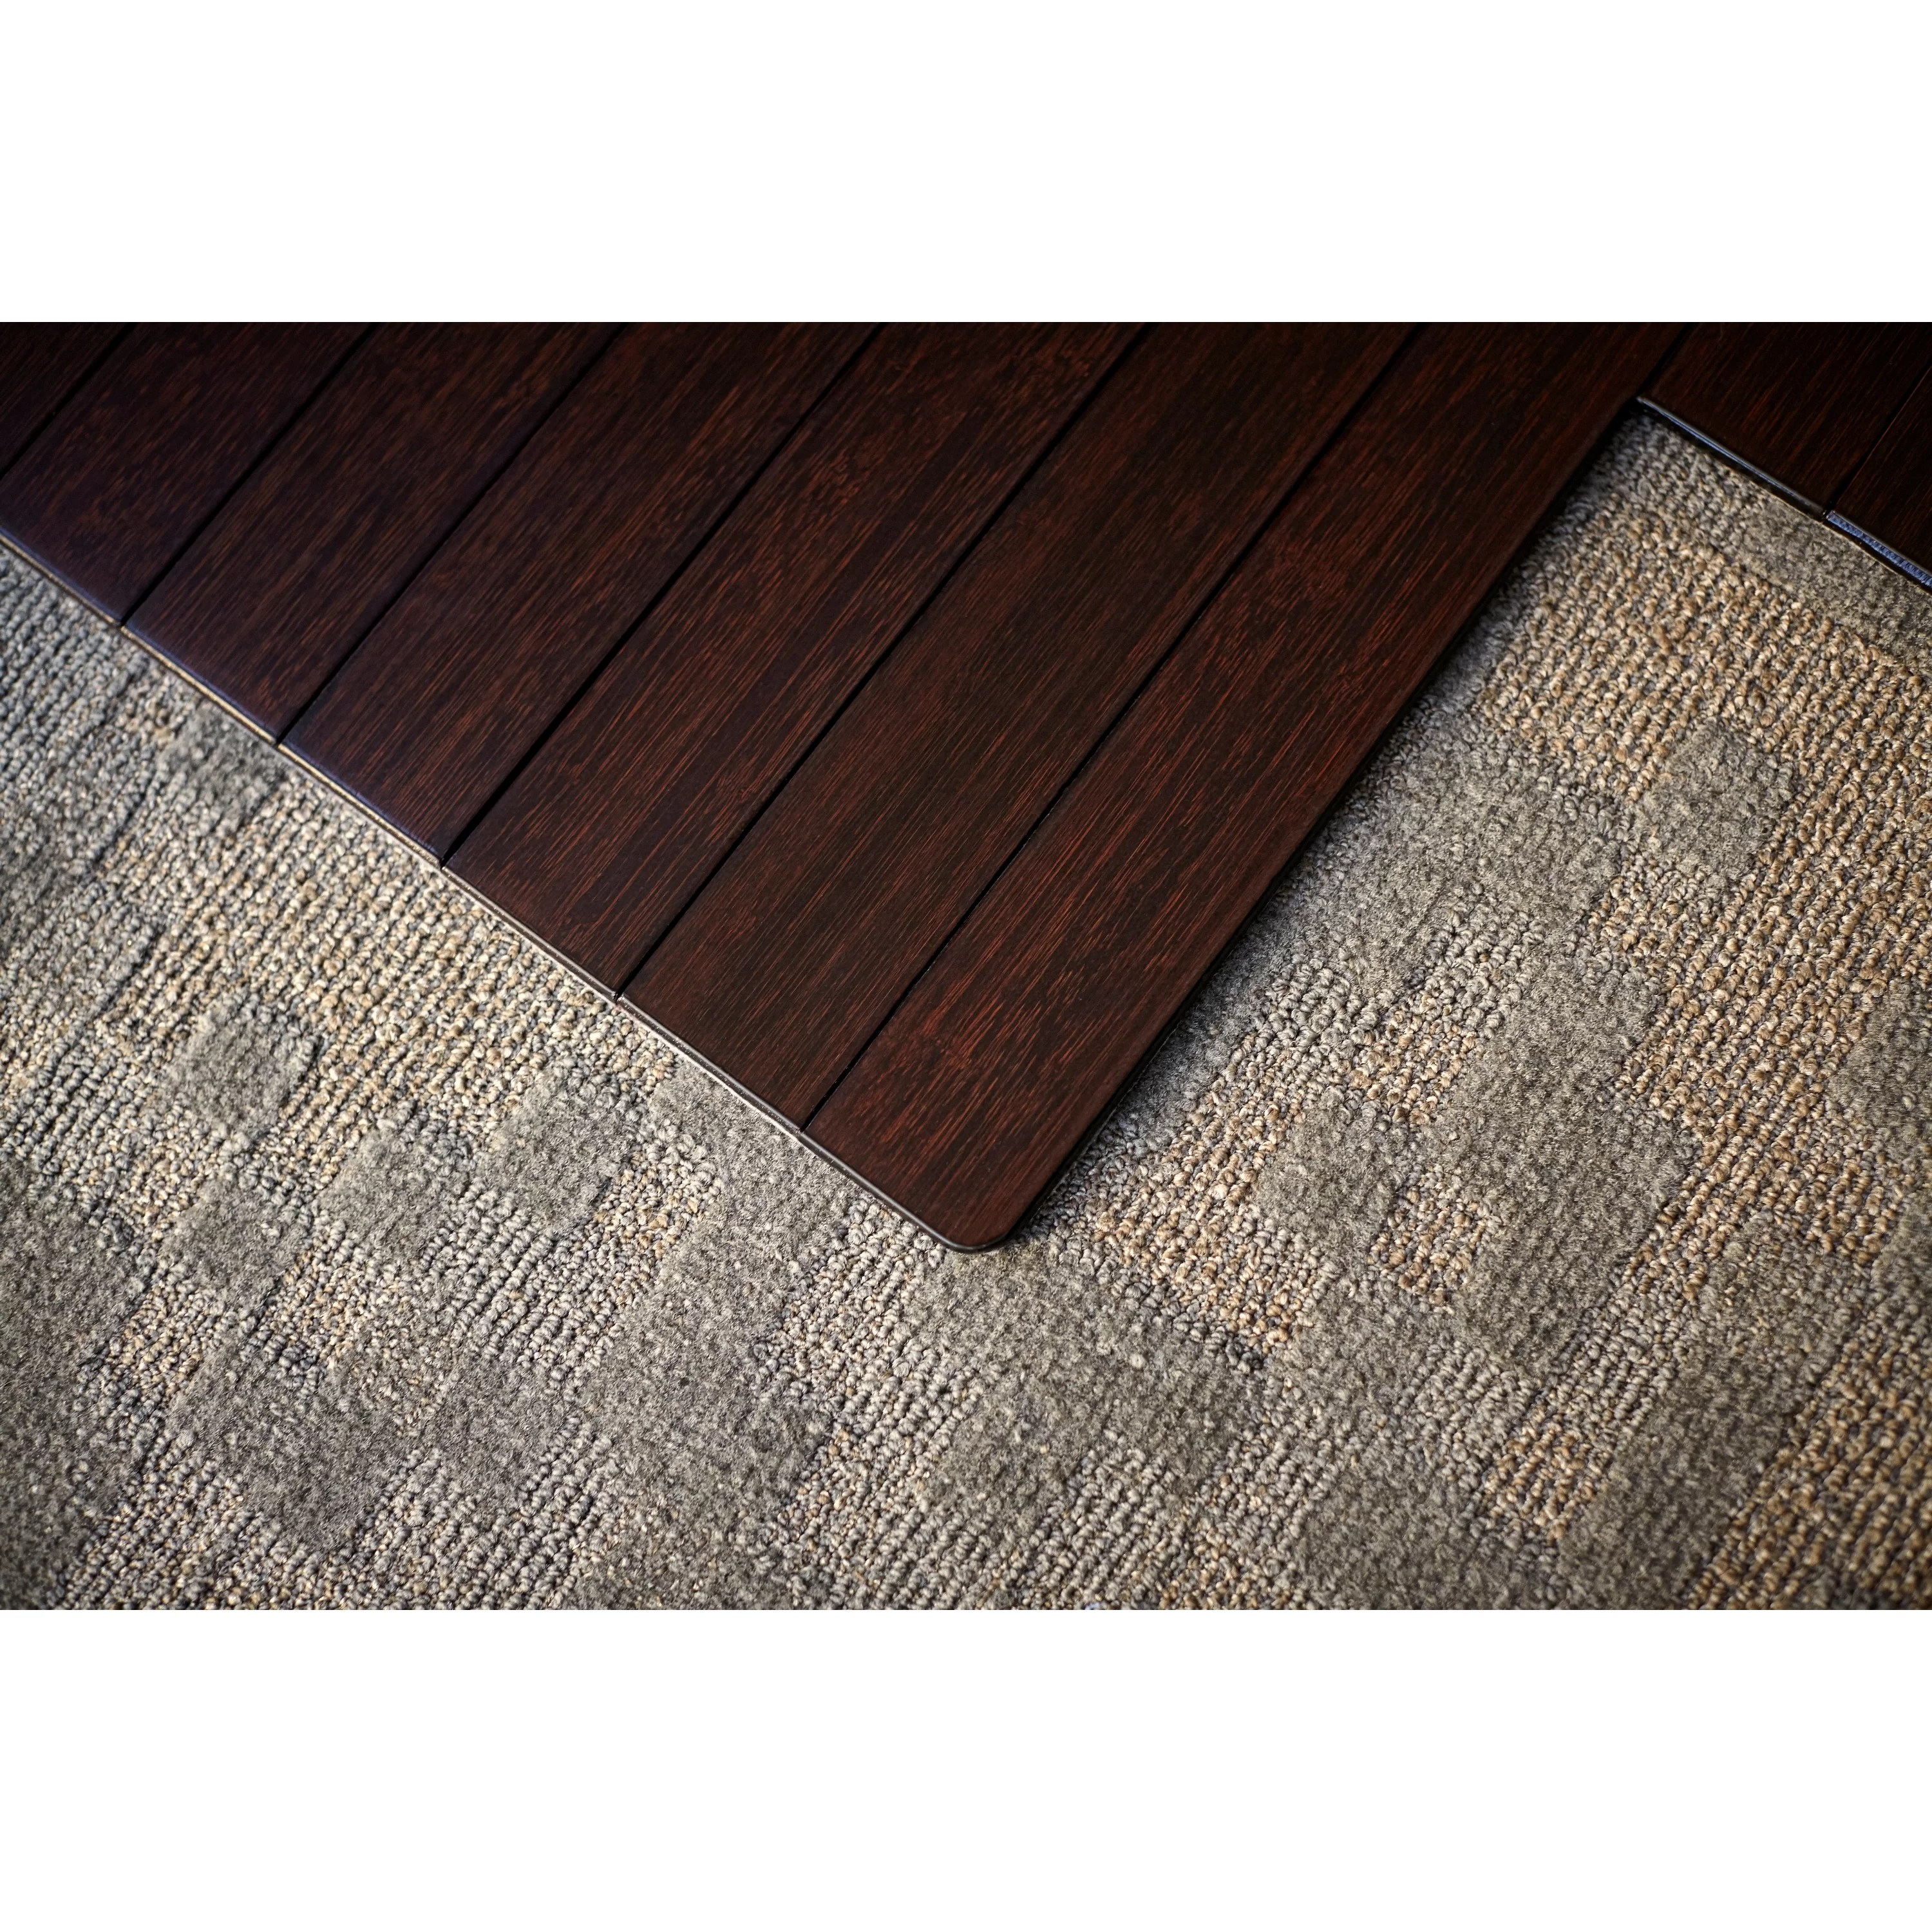 office max hardwood floor chair mat wedding covers cheap wildon home ® low pile and bamboo & reviews   wayfair